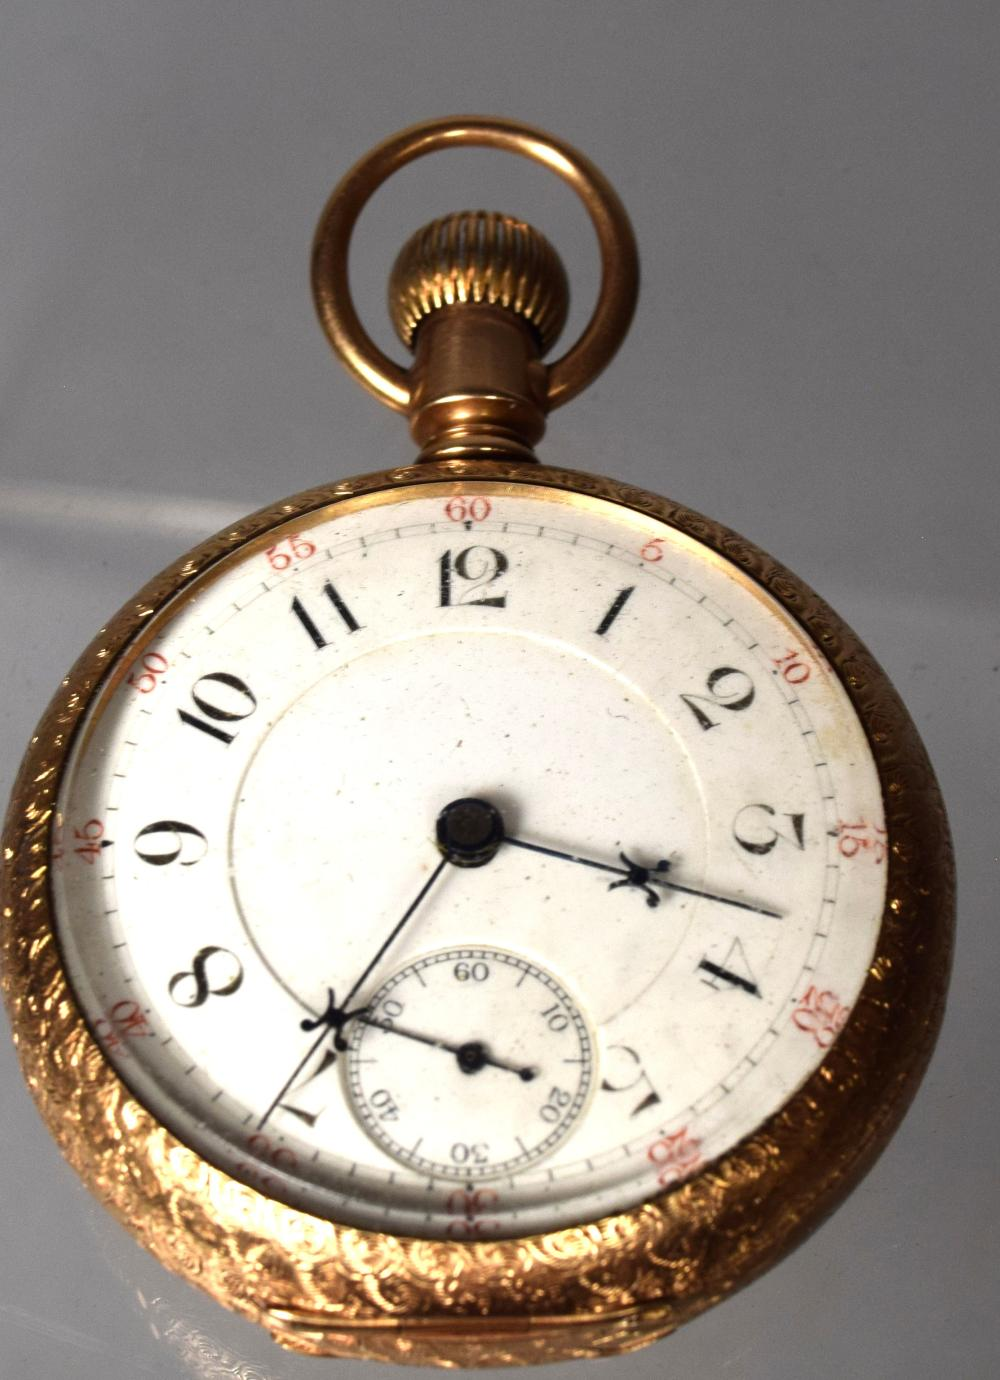 HEAVY 14KT GOLD WATHAM OPEN FACE POCKET WATCH: